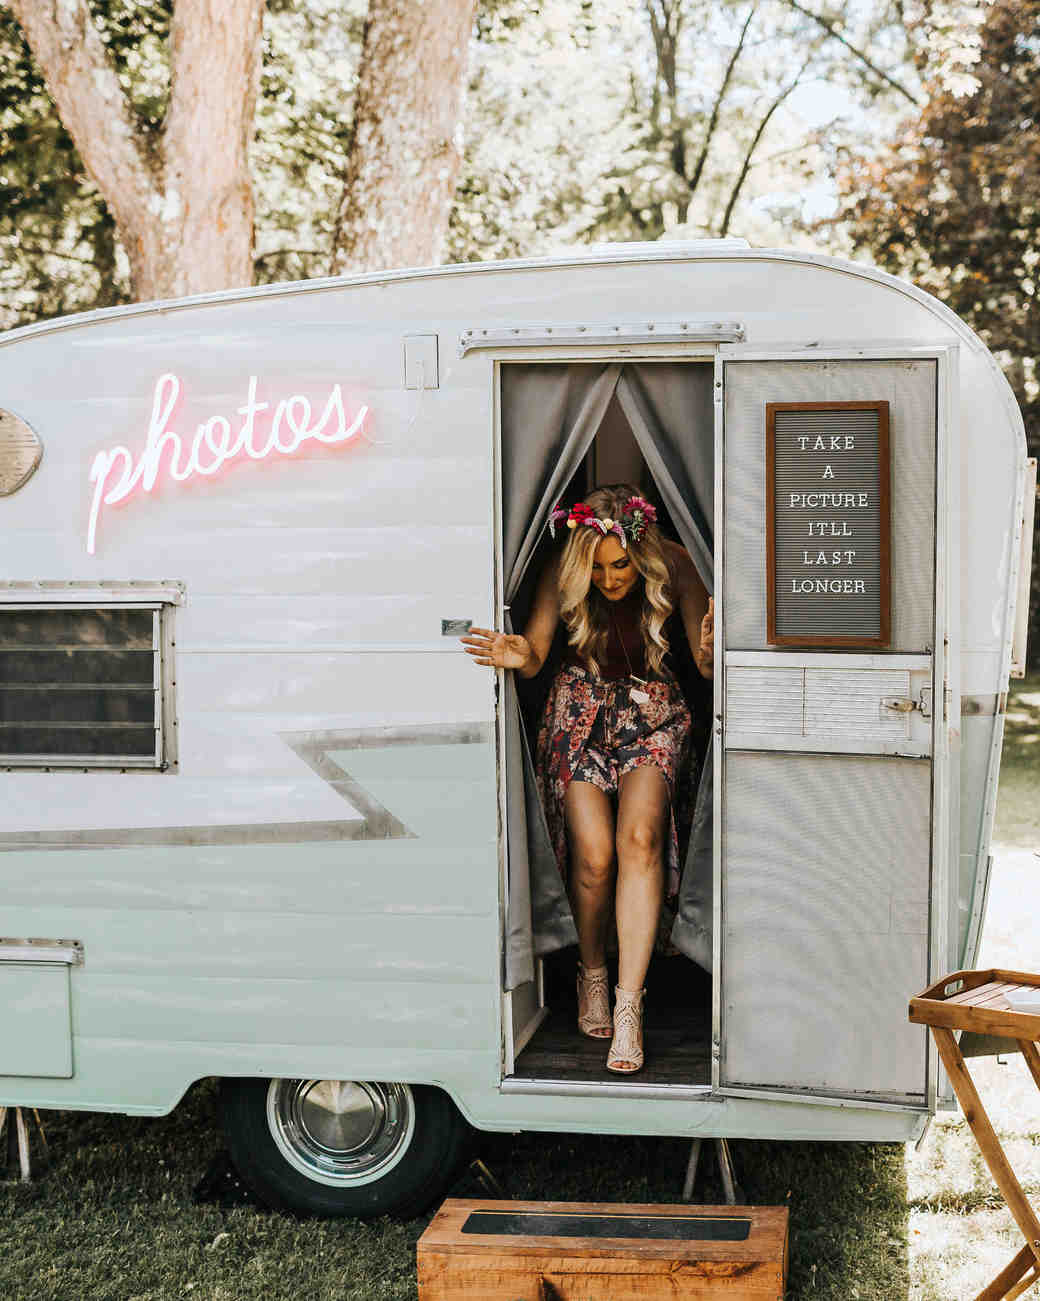 photos neon sign on photo booth camper